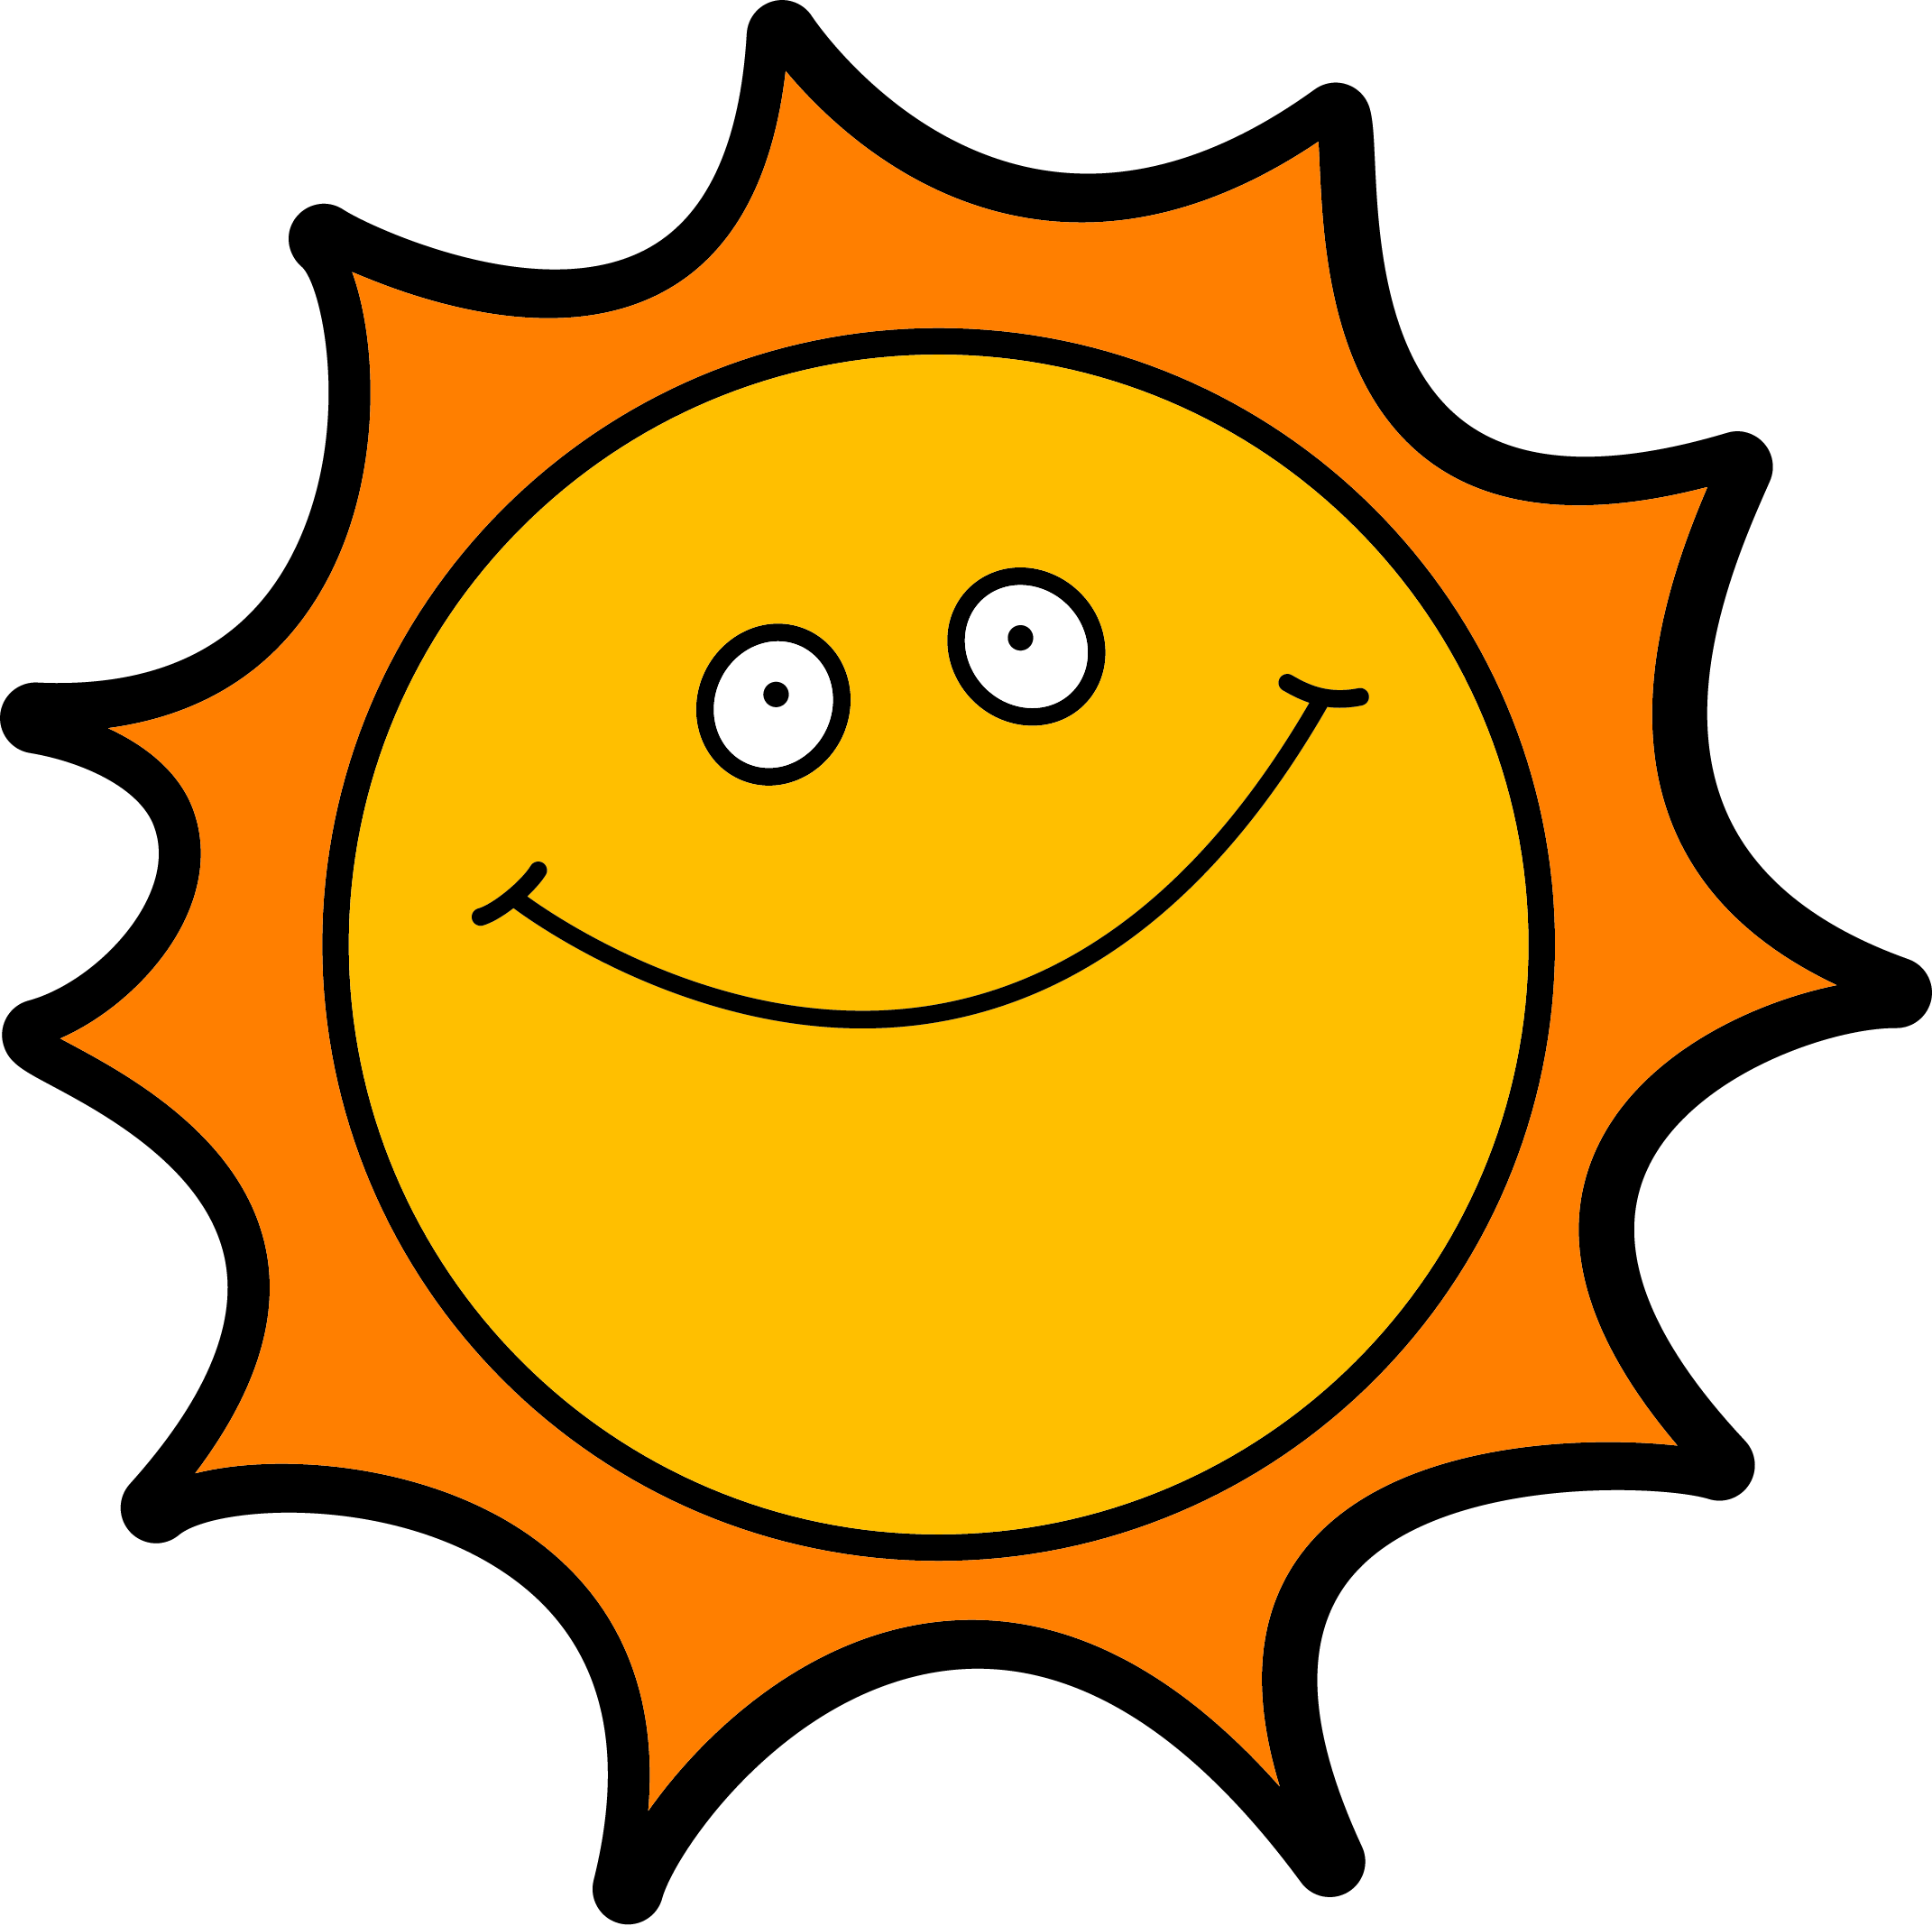 Time free download best. Enjoying the sun clipart